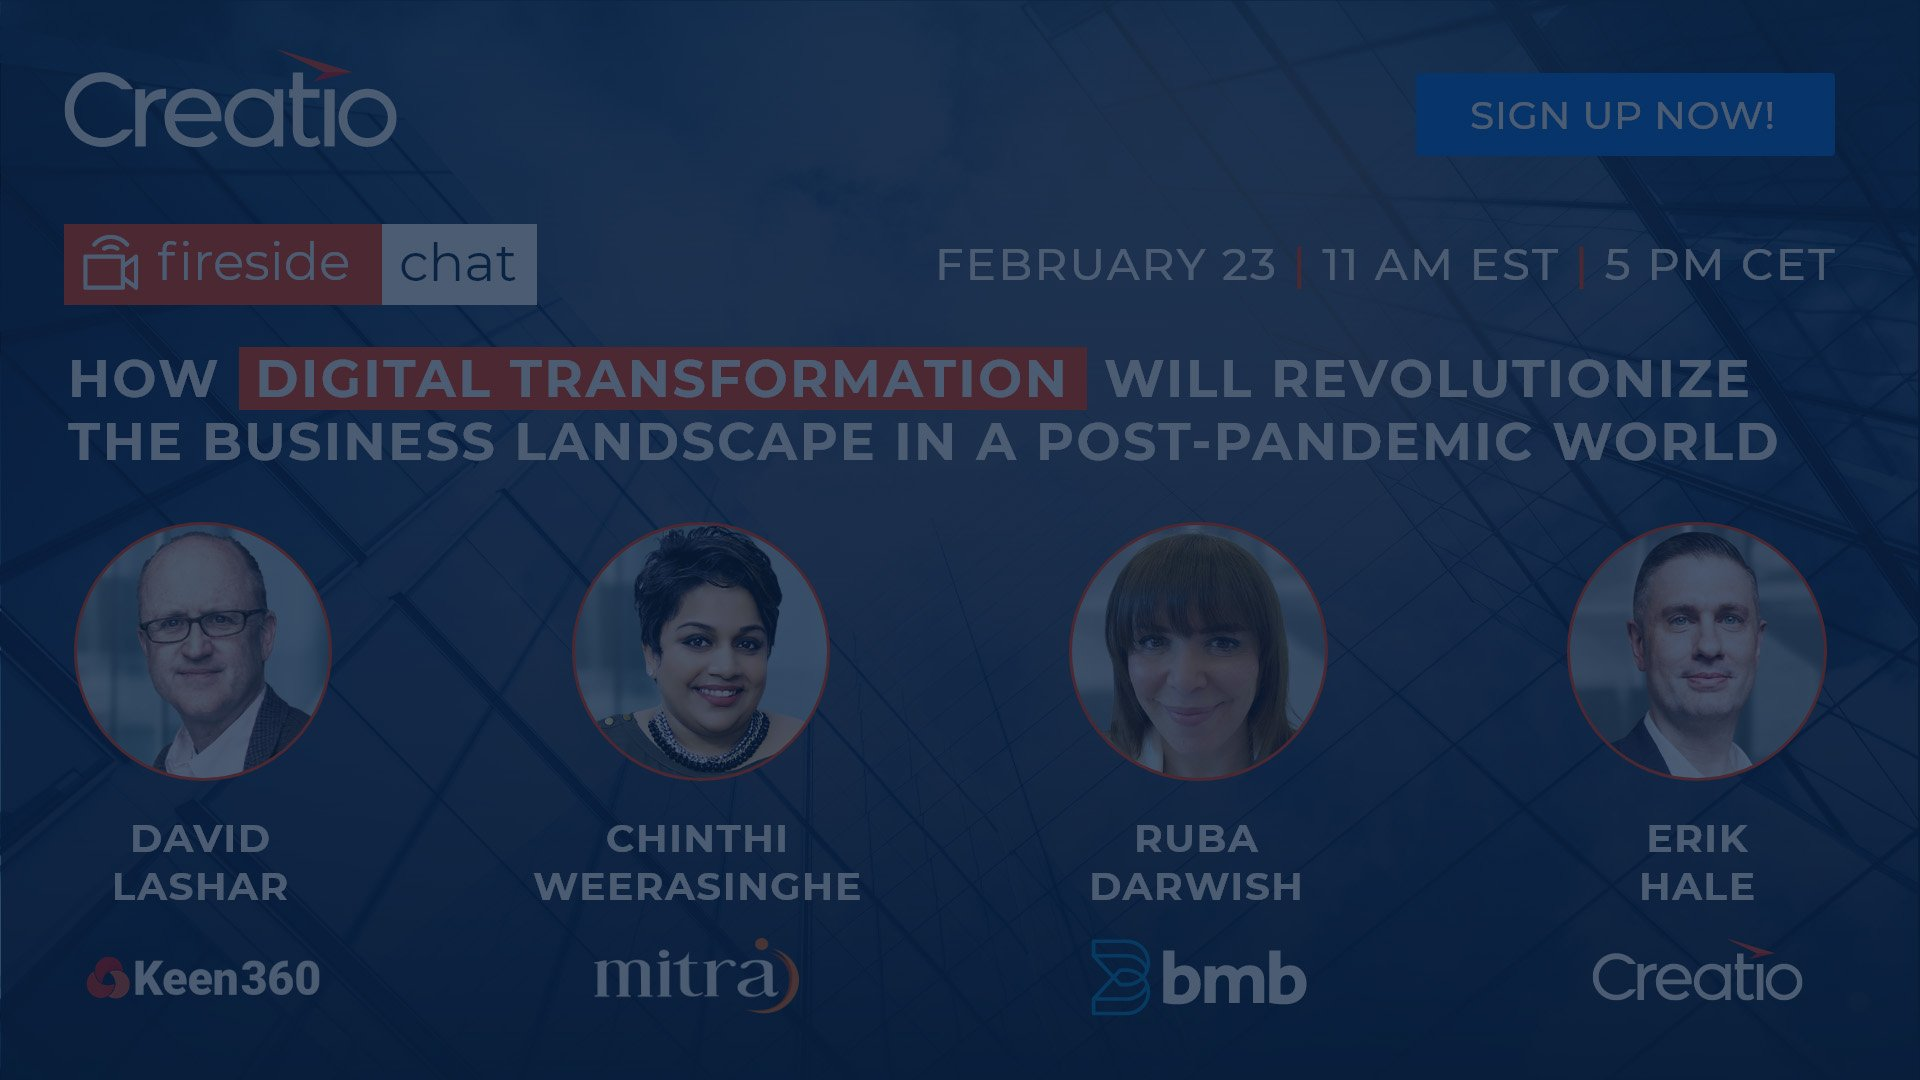 How Digital Transformation Will Revolutionize the Business Landscape in a Post-Pandemic World